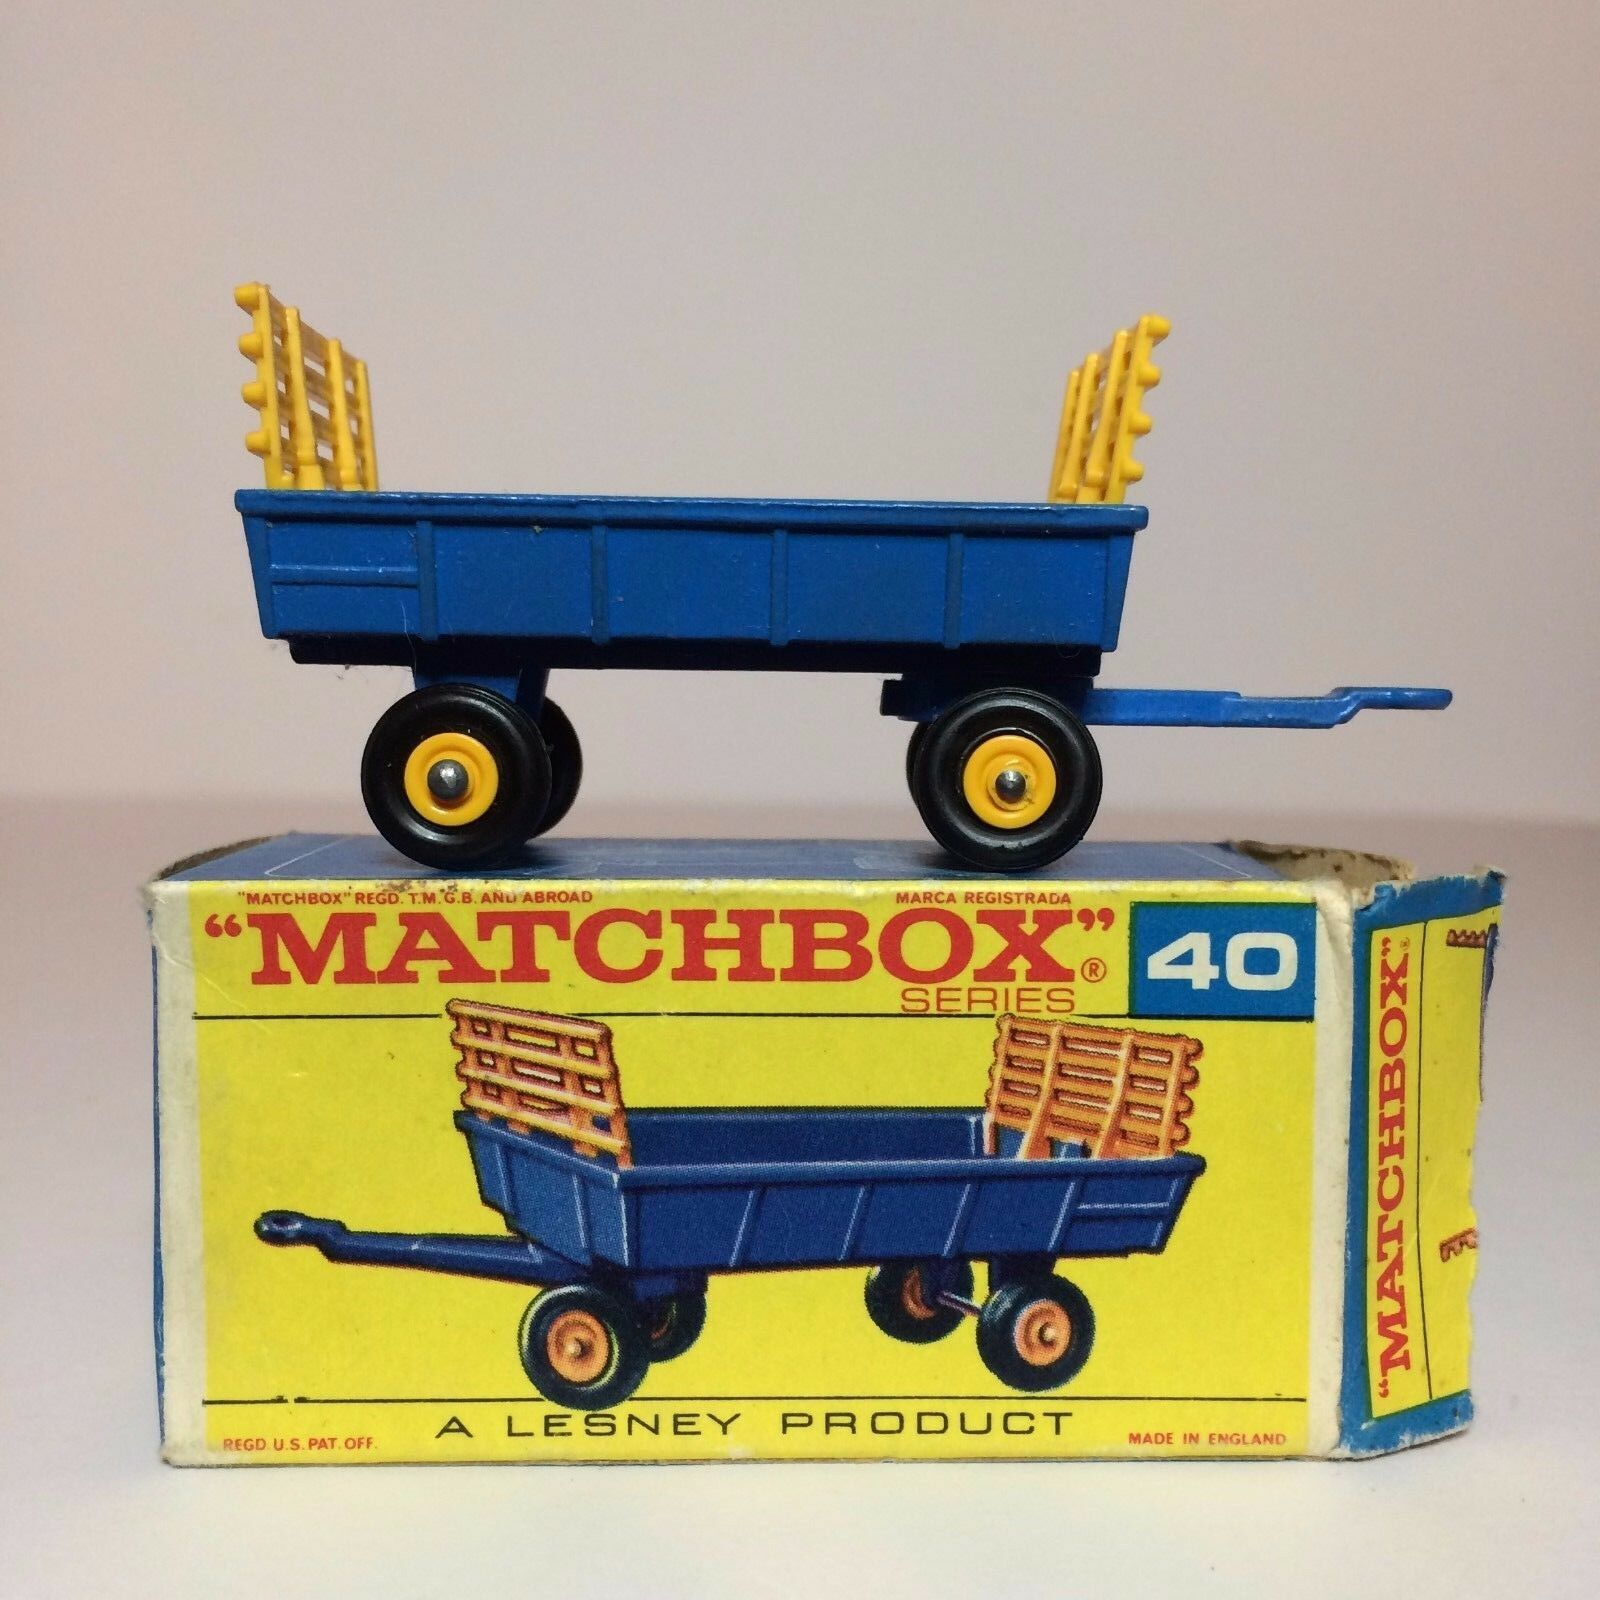 Vintage Lesney Matchbox Vehicle With Box - bluee & Yellow Hay Trailer  40